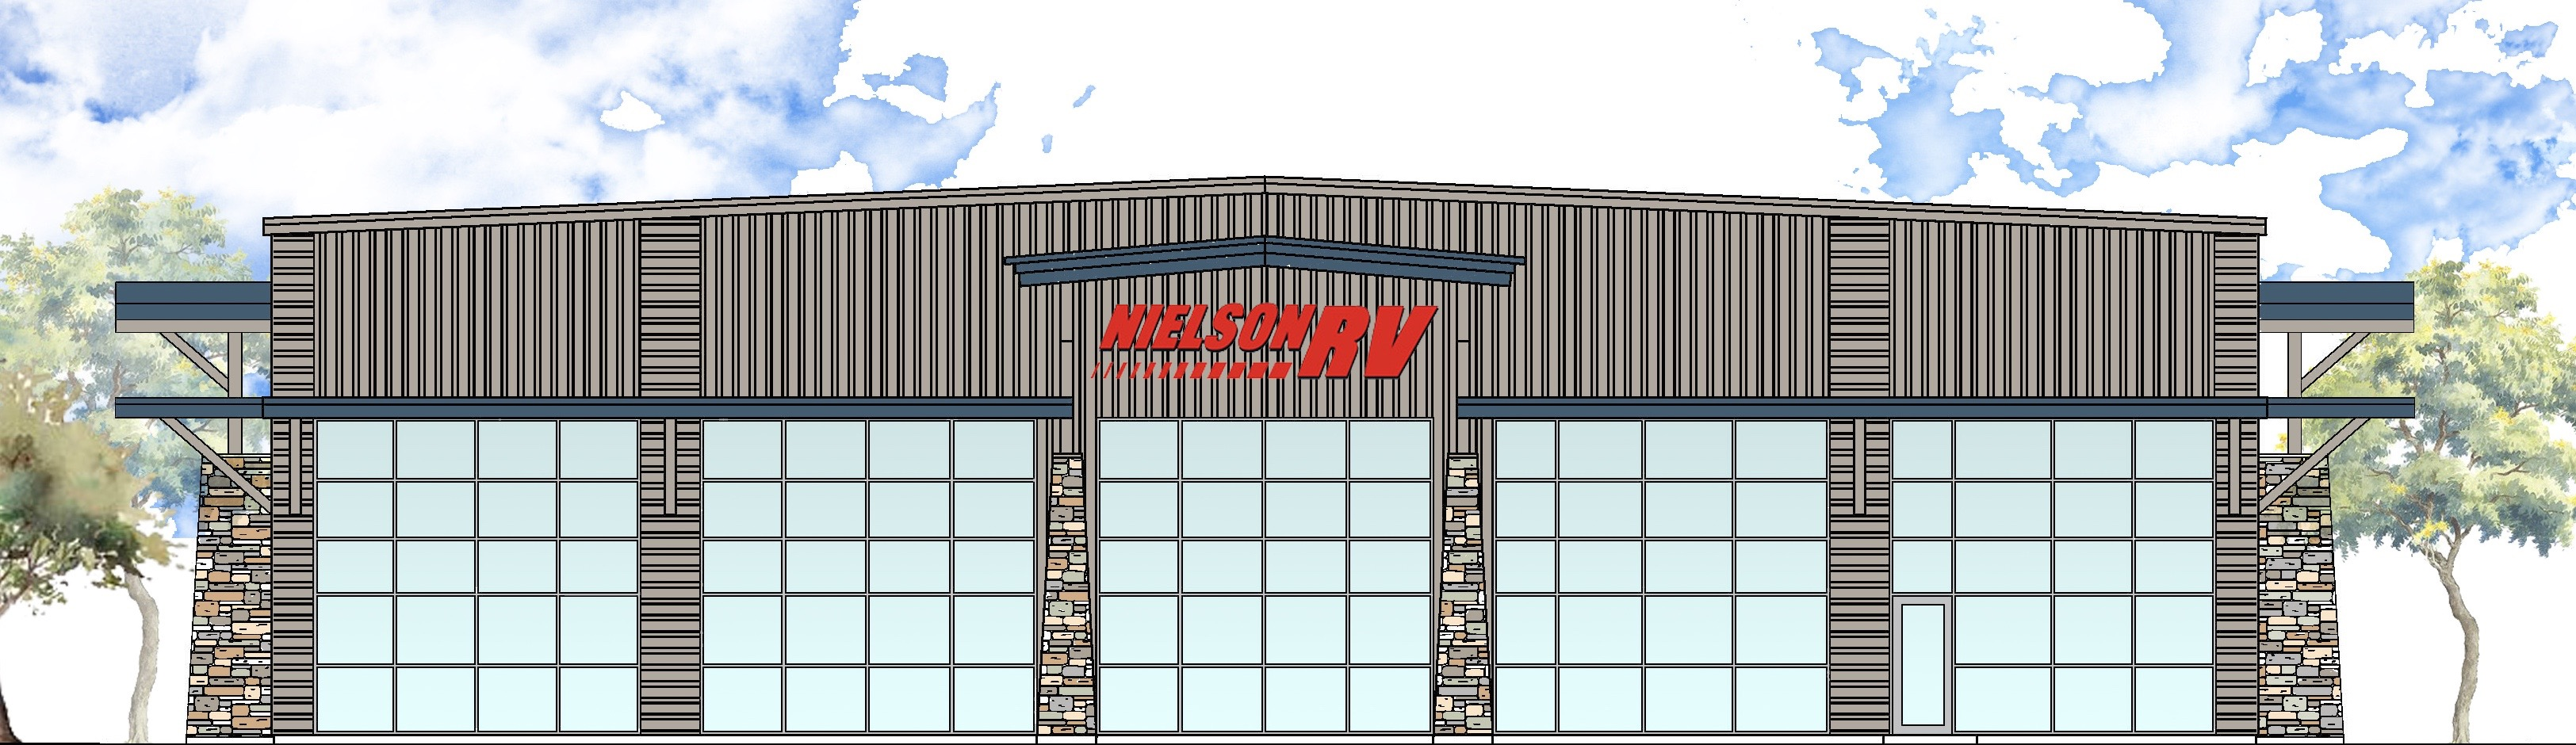 Architectrual rendering of the nwe Nielson RV facility on Sunland Drive in St. George, Utah, July 7, 2016   Photo by Julie Applegate, St. George News